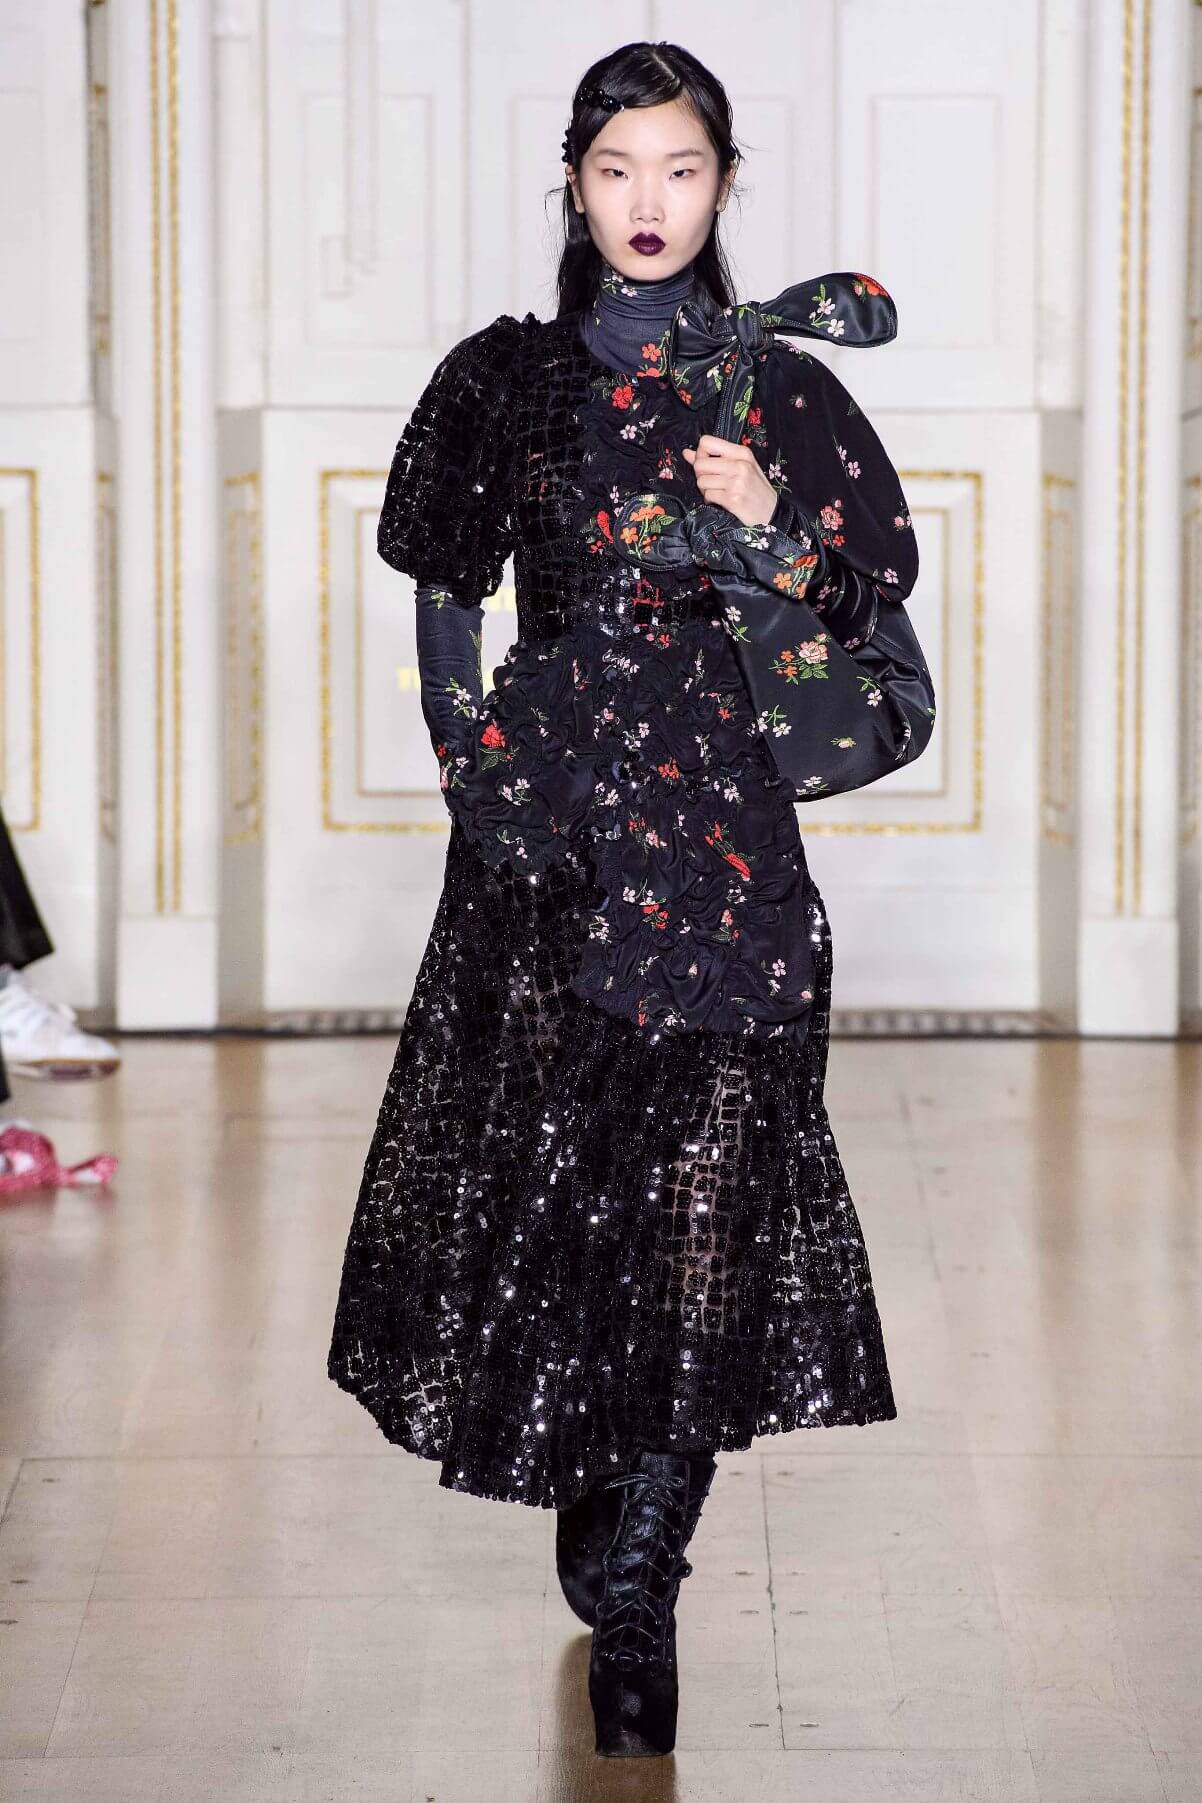 floreale in autunno - Simone Rocha // Photo Credit Vogue.com